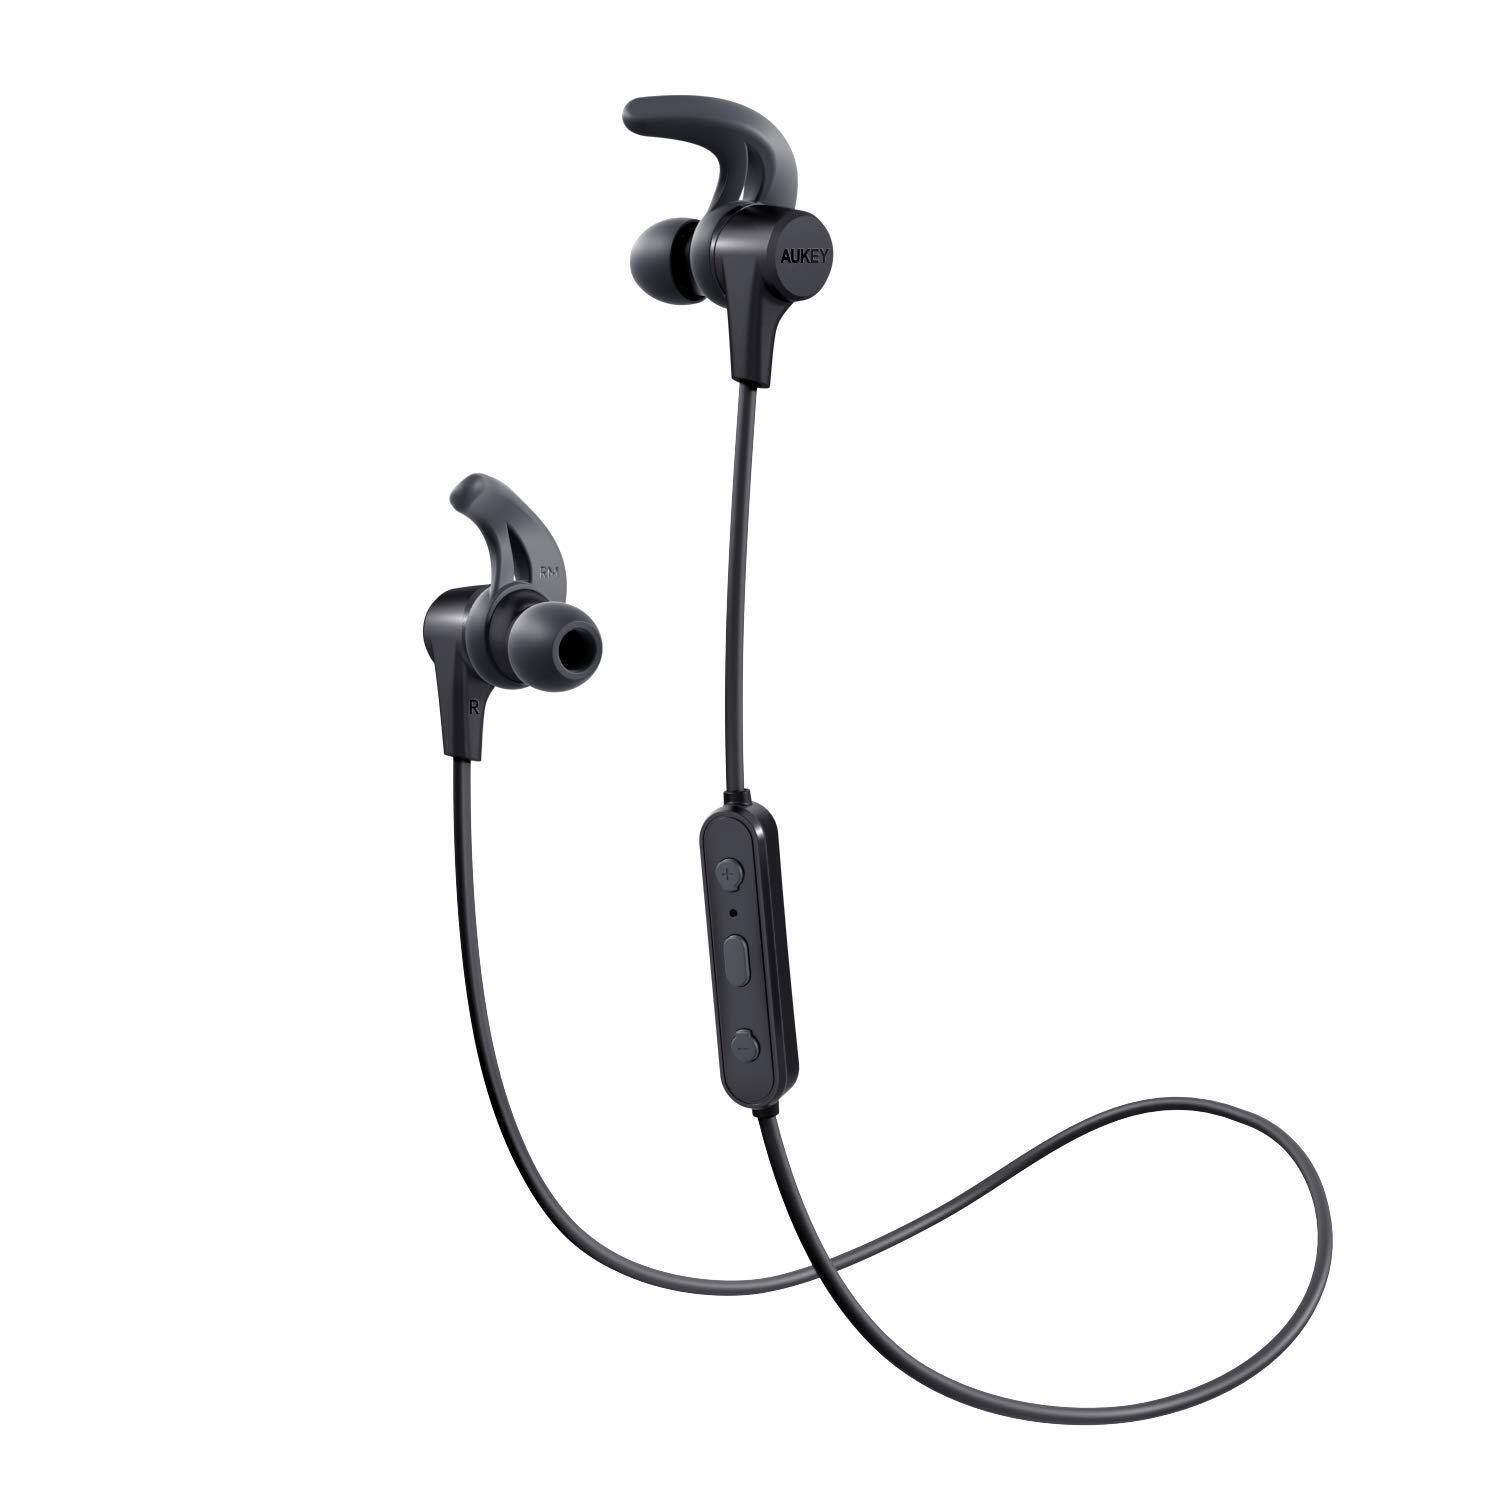 6b7652413ef AUKEY B40S Wireless Earbuds Bluetooth Headphones with Enhanced Bass  Sweat-Resistant 8-Hour Battery